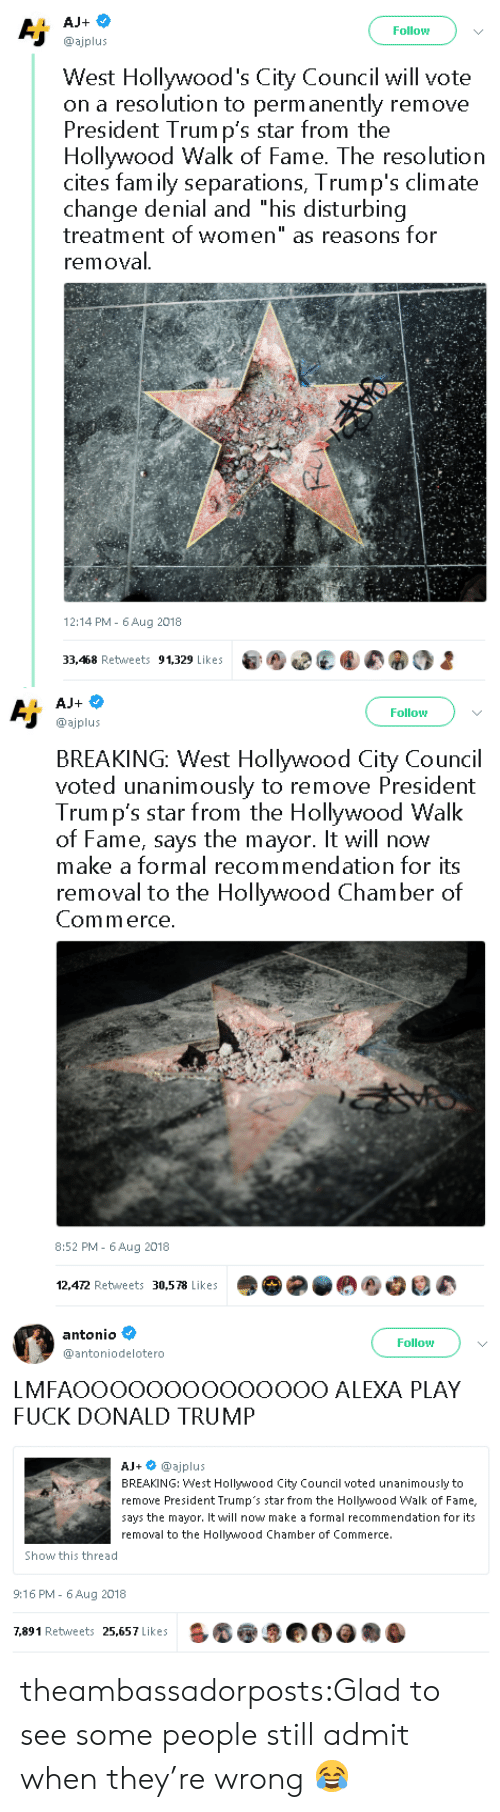 """Donald Trump, Fam, and Tumblr: Follow  @ajplus  West Hollywood's City Council will vote  on a resolution to perm anently remove  President Trum p's star from the  Hollywood Walk of Fame. The resolution  cites fam ily separations, Trump's climate  change denial and """"his disturbing  treatment of women"""" as reasons for  removal  12:14 PM- 6Aug 2018  33,468 Retweets 91,329 Likes   Follow  @ajplus  BREAKING: West Hollywood City Council  voted unanimously to remove President  Trum p's star from the Hollywood Walk  of Fame, says the mayor. It will now  make a formal recommendation for its  removal to the Hollywood Chamber of  Commerce  8:52 PM - 6Aug 2018  12,472 Retweets 30,578 Likes   antonio  @antoniodelotero  Follow  LMFAOOOOOOOOOOOOOO ALEXA PLAY  FUCK DONALD TRUMP  AJ+ @ajplus  BREAKING: West Hollywood City Council voted unanimously to  remove President Trump's star from the Hollywood Walk of Fame,  says the mayor. It will now make a formal recommendation for its  removal to the Hollywood Chamber of Commerce.  Show this thread  9:16 PM- 6 Aug 2018  7,891 Retweets 25,657 Likes theambassadorposts:Glad to see some people still admit when they're wrong 😂"""